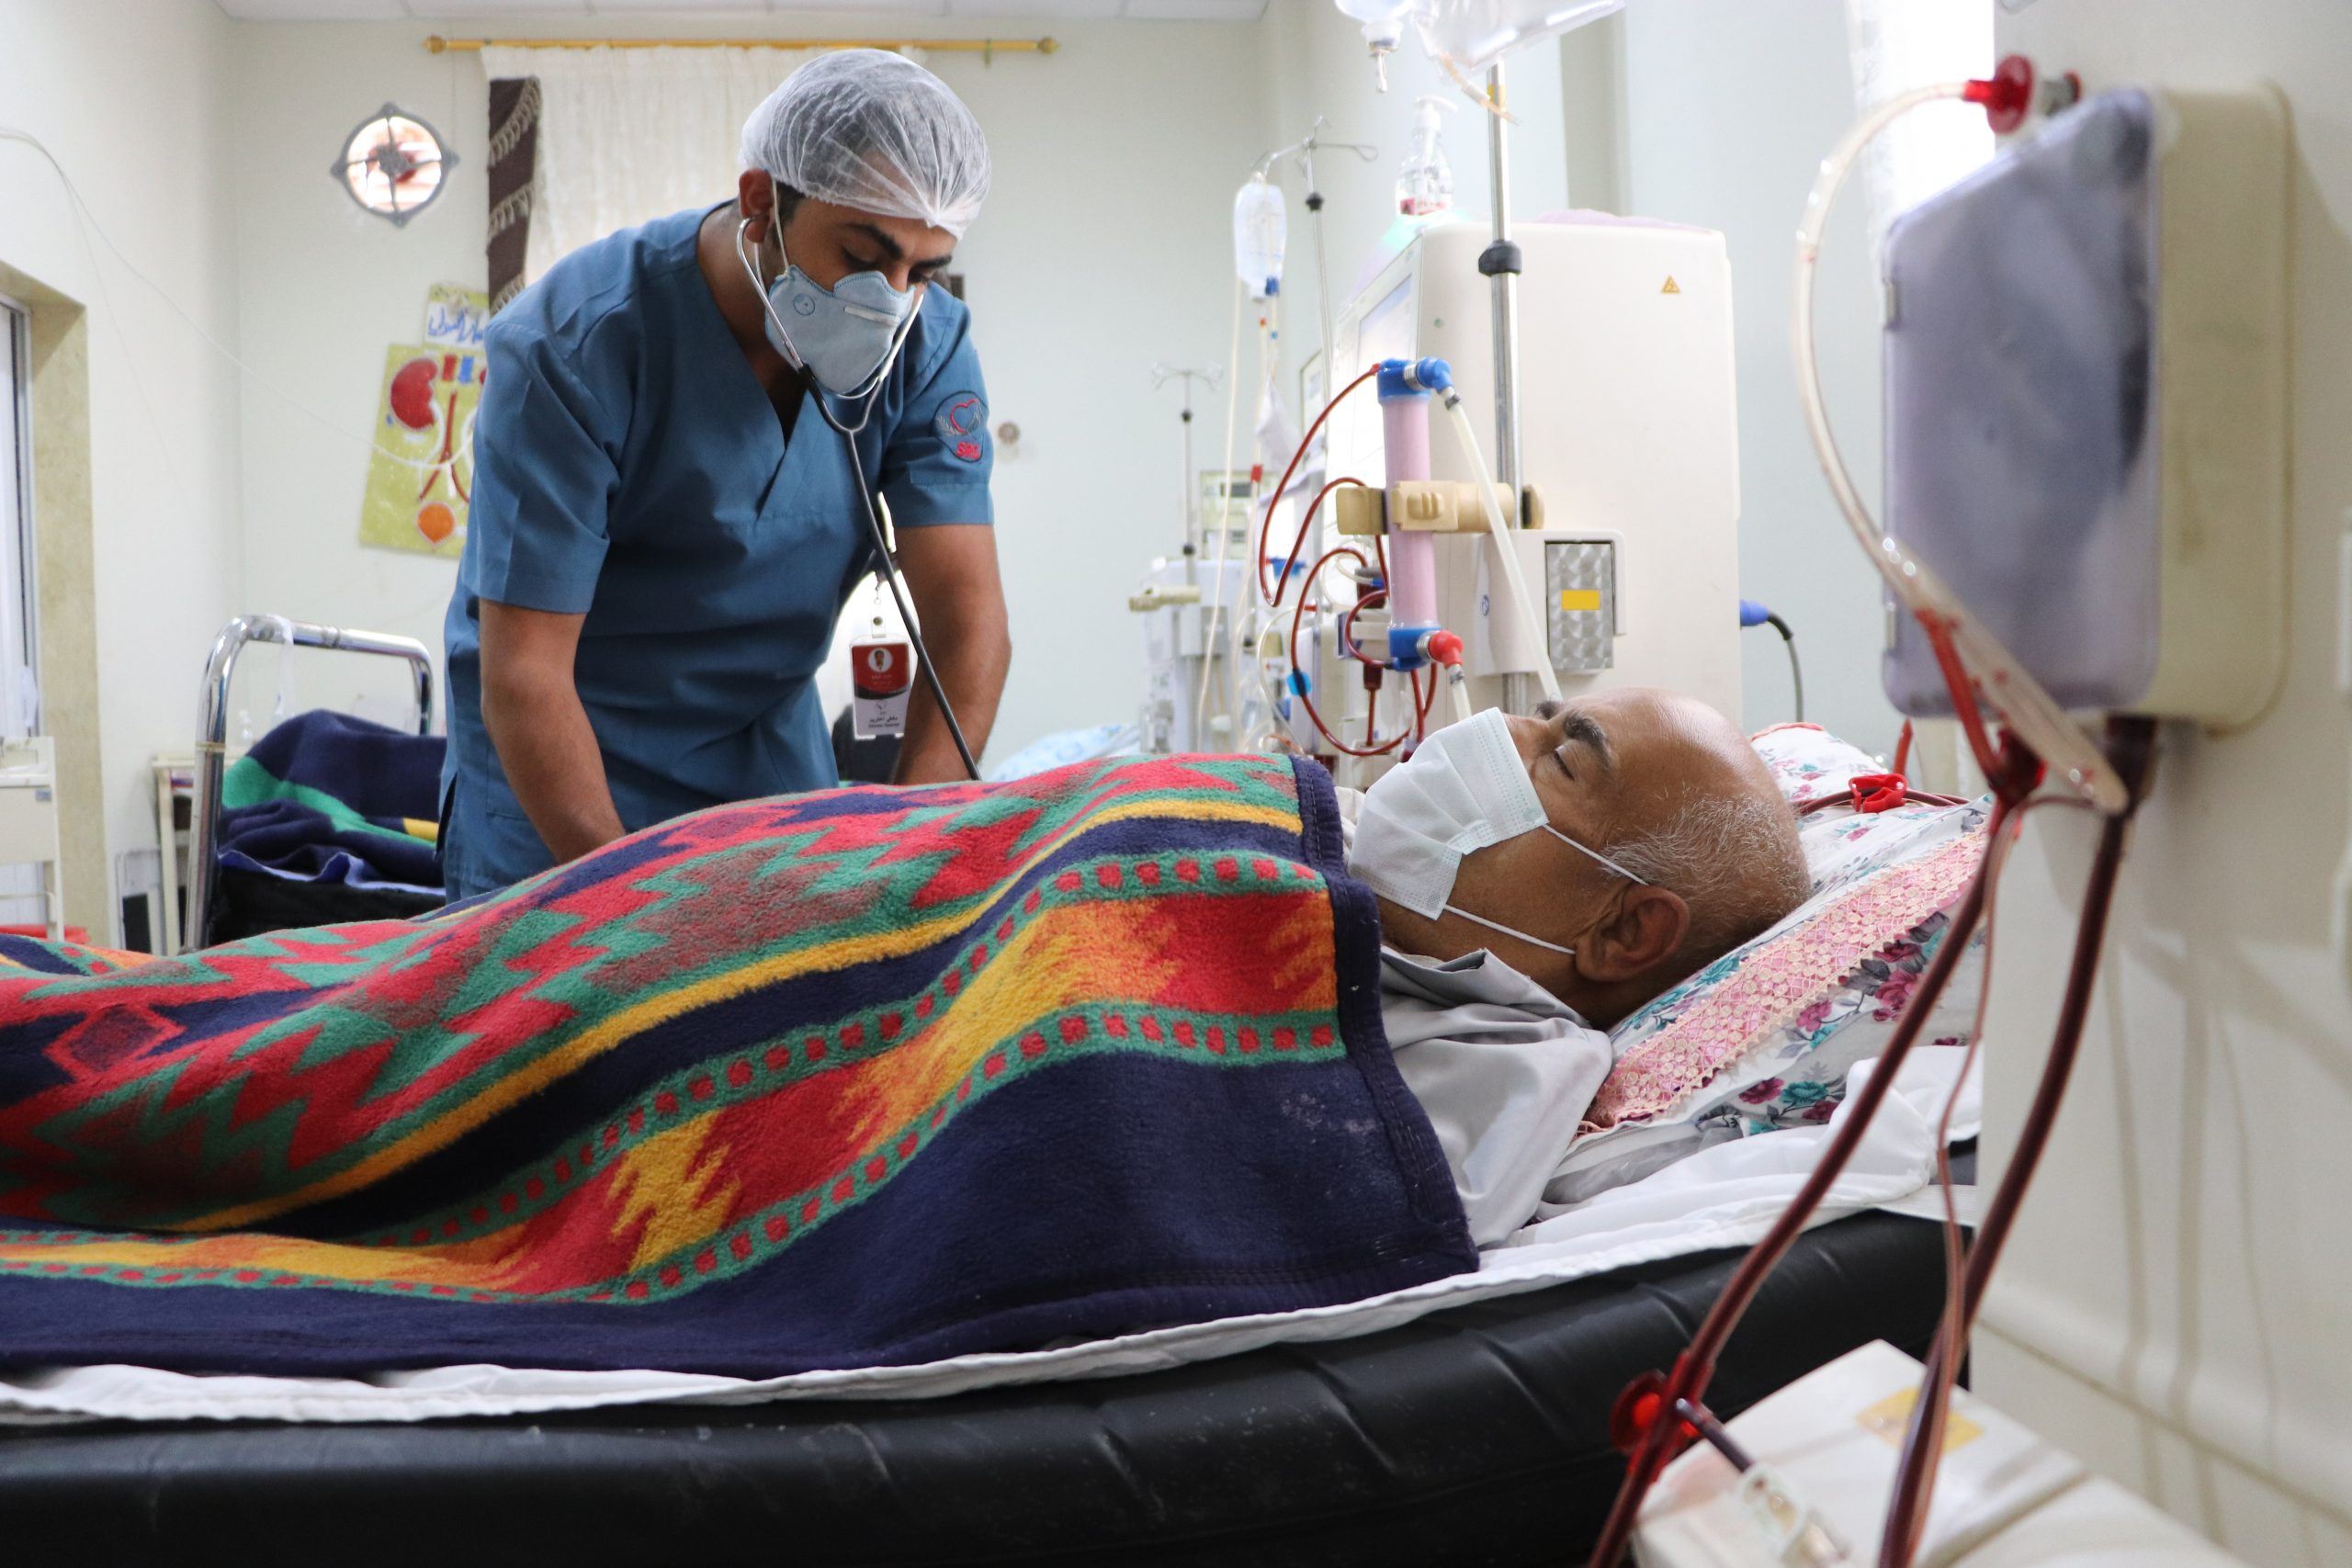 Abdul's Survival Story: Journey to Akhtarin Hospital